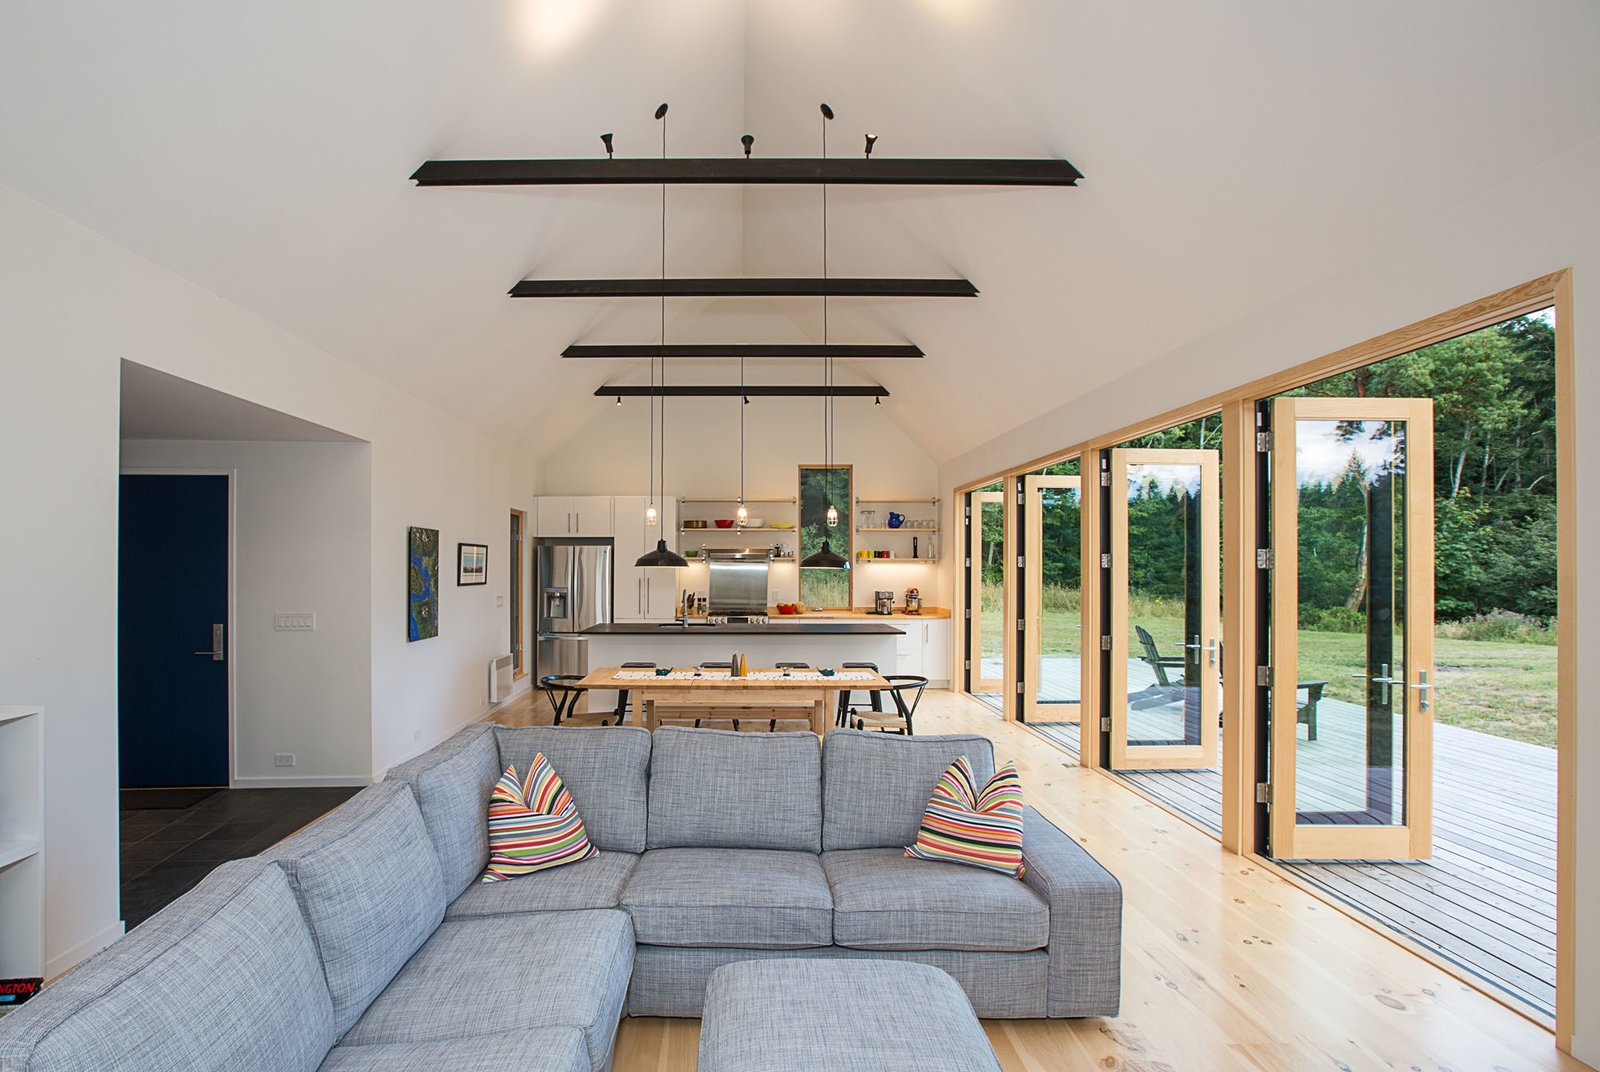 A combination of carefully chosen furniture and finishes, including pine flooring and trim, warms up the lofty white interior. Tagged: Living Room, Sofa, Pendant Lighting, Track Lighting, and Light Hardwood Floor.  The Coyle by Prentiss + Balance + Wickline Architects